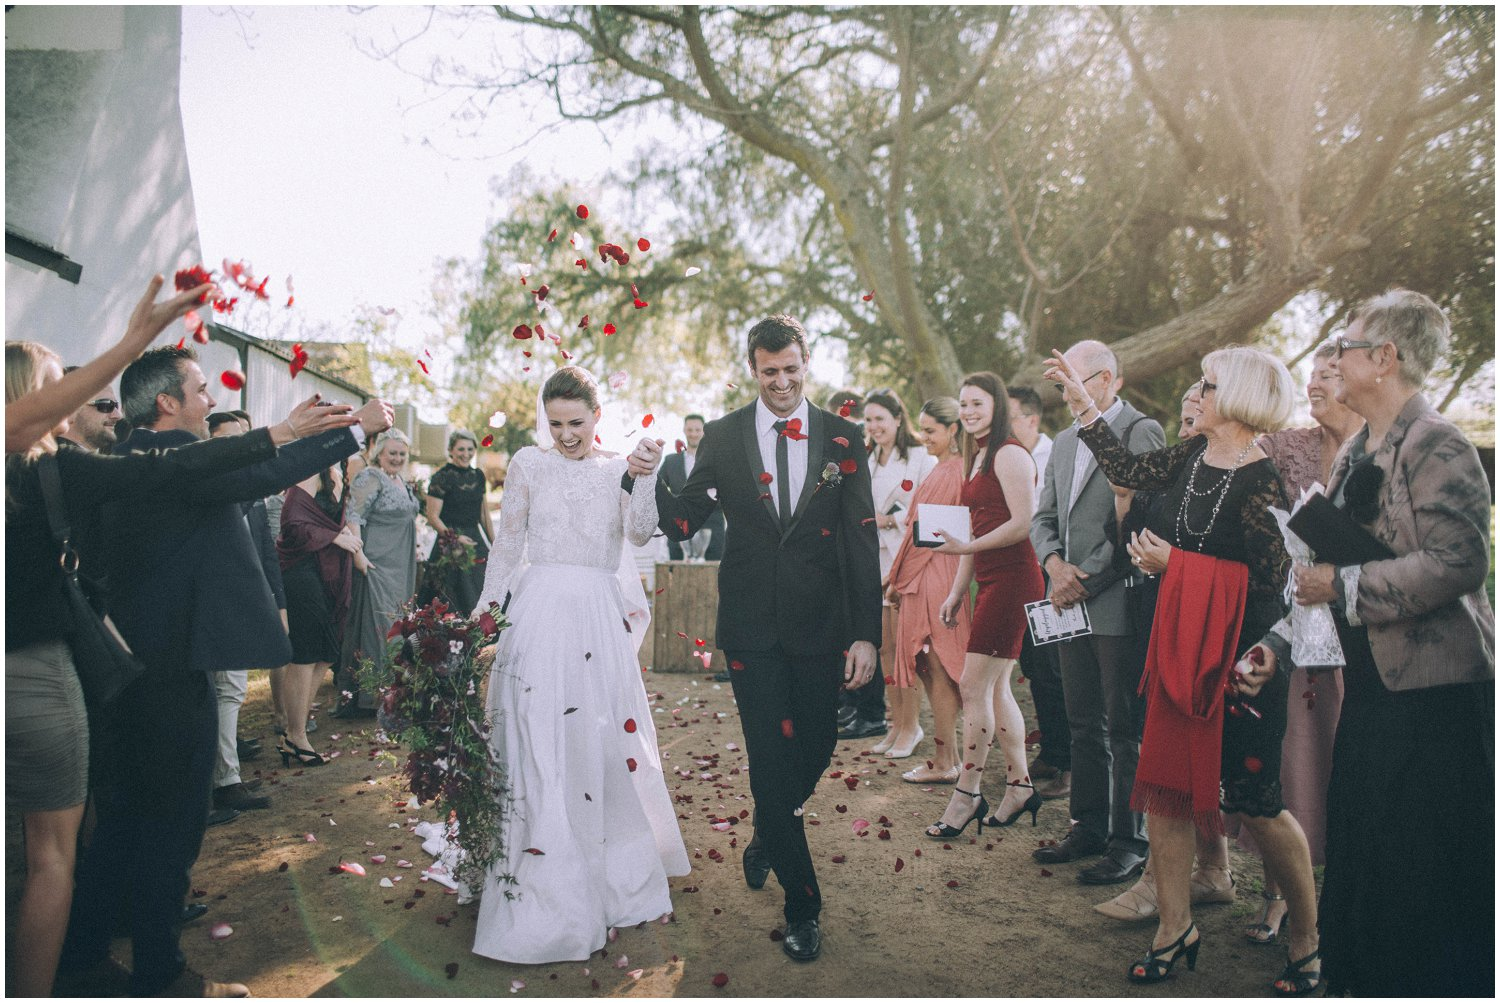 Top Wedding Photographer Cape Town South Africa Artistic Creative Documentary Wedding Photography Rue Kruger_1208.jpg